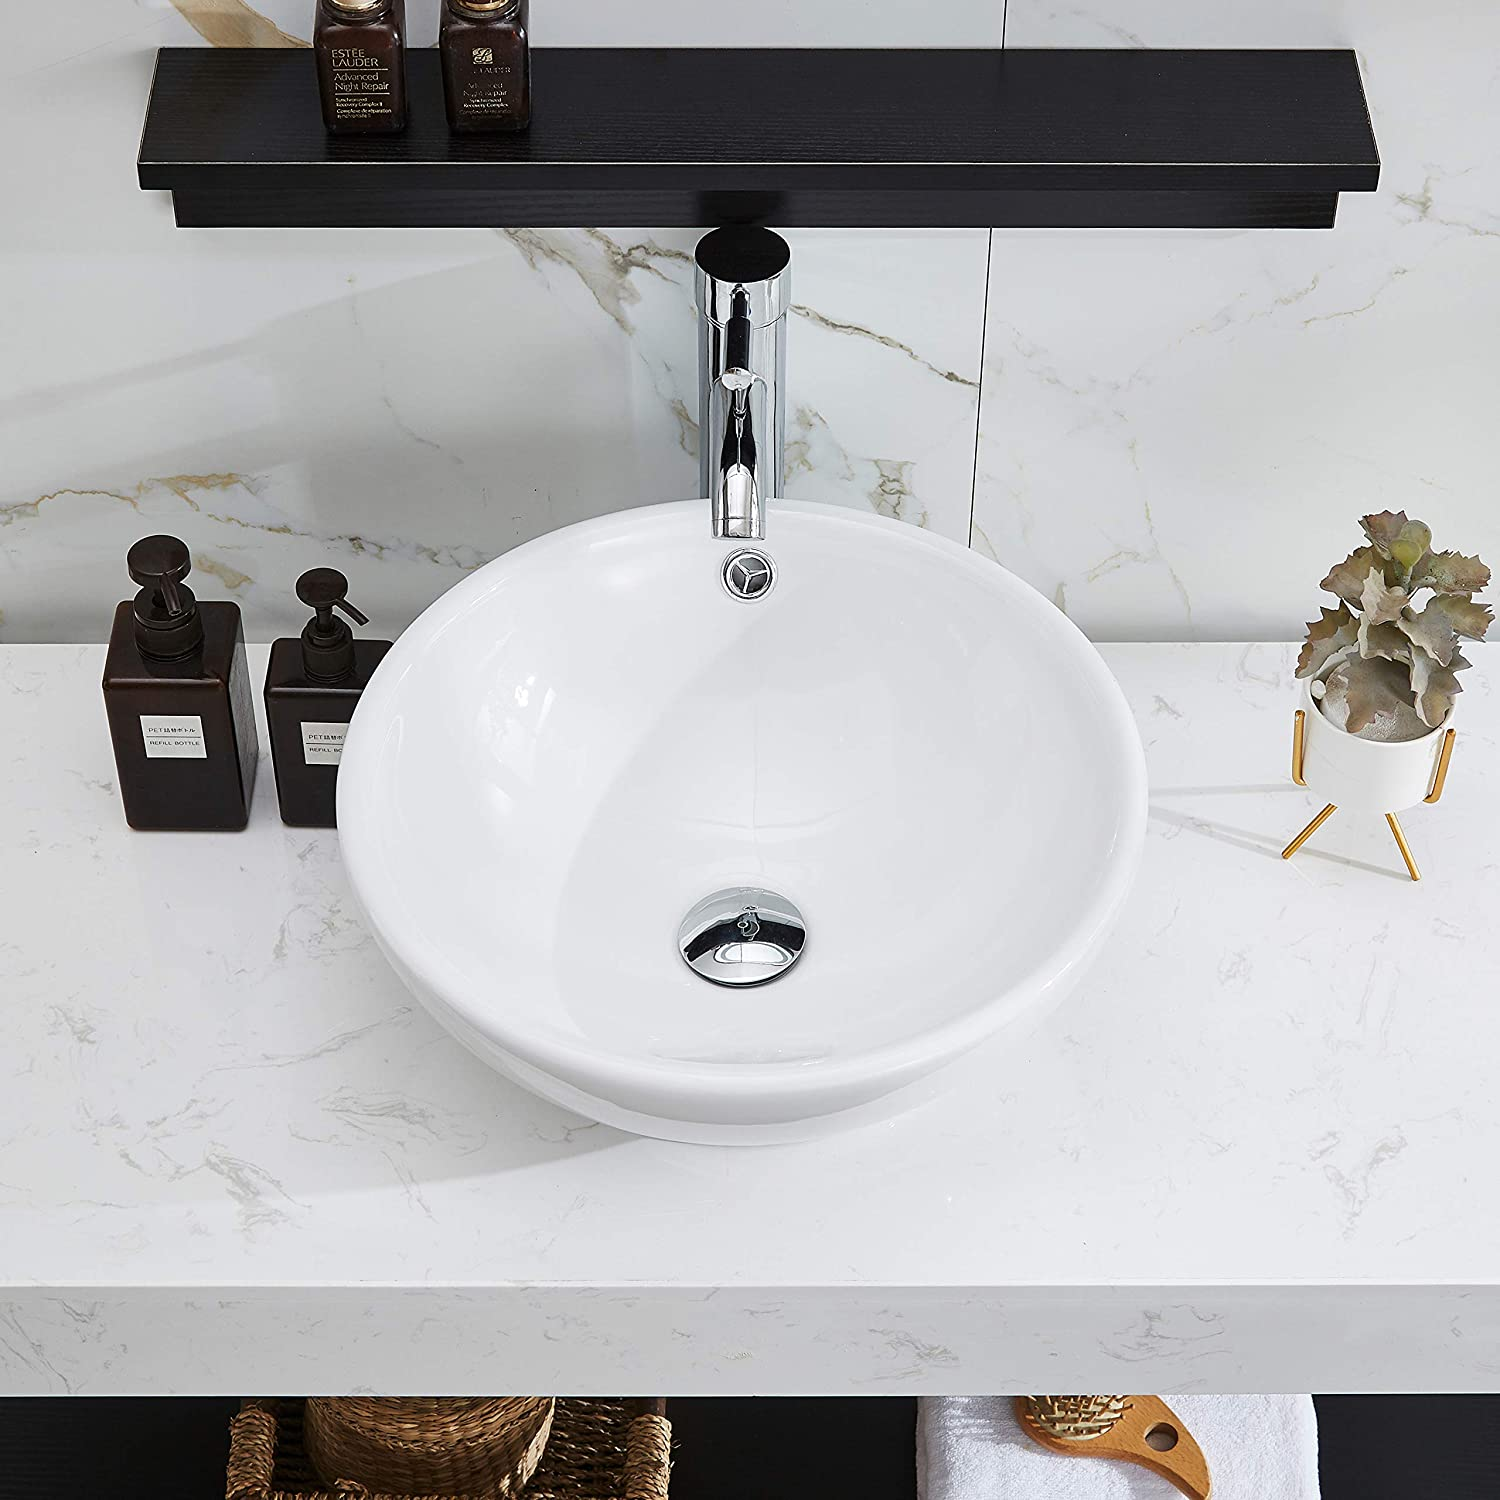 Buy Petushouse Bathroom Vessel Sink And Pop Up Drain Combo Round Above Counter White Porcelain Ceramic Bathroom Vessel Vanity Sink Washing Art Basin Bowl Overflow Type Online In Indonesia B085ky497w